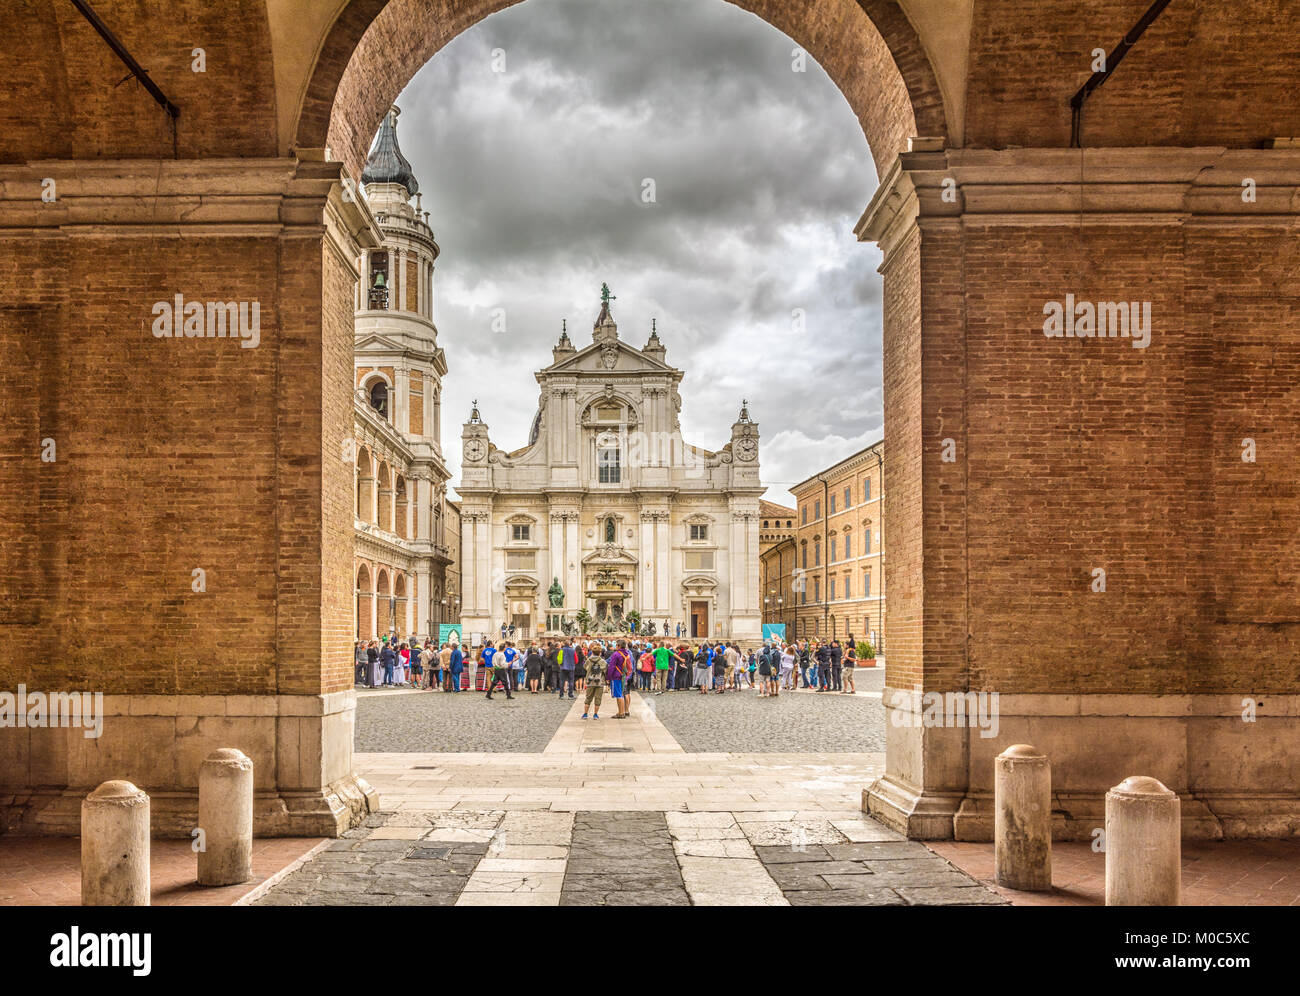 Sanctuary of the Holy House of Loreto, Marches, Italy, the Basilica facade with the Sisto V monument in the foreground - Stock Image